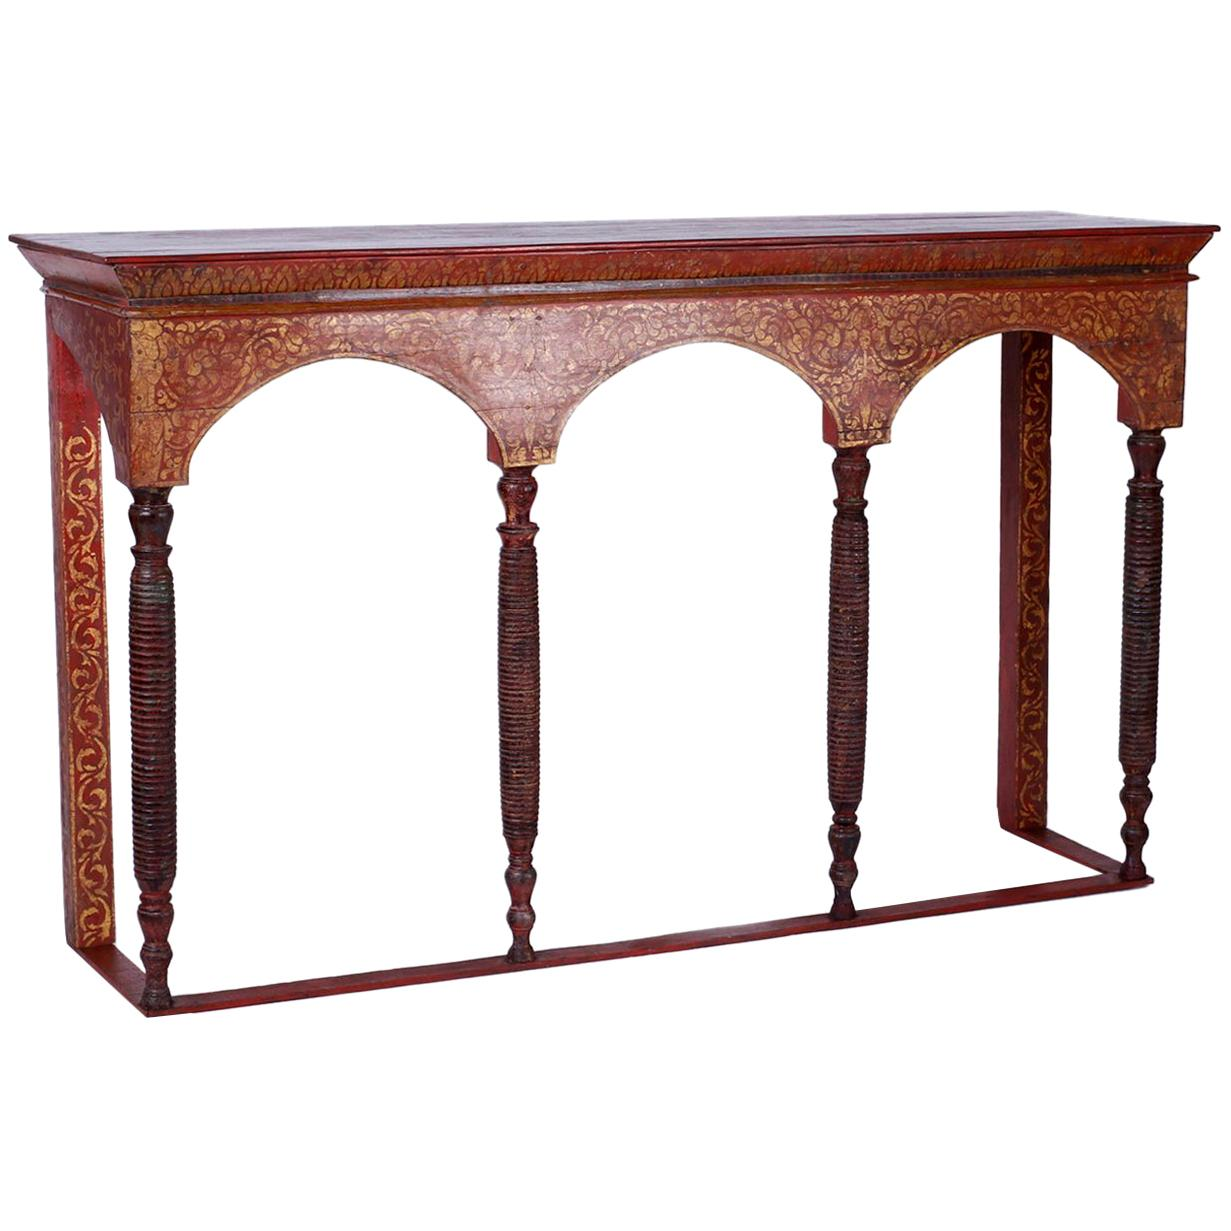 Thai Painted Altar Table or Console